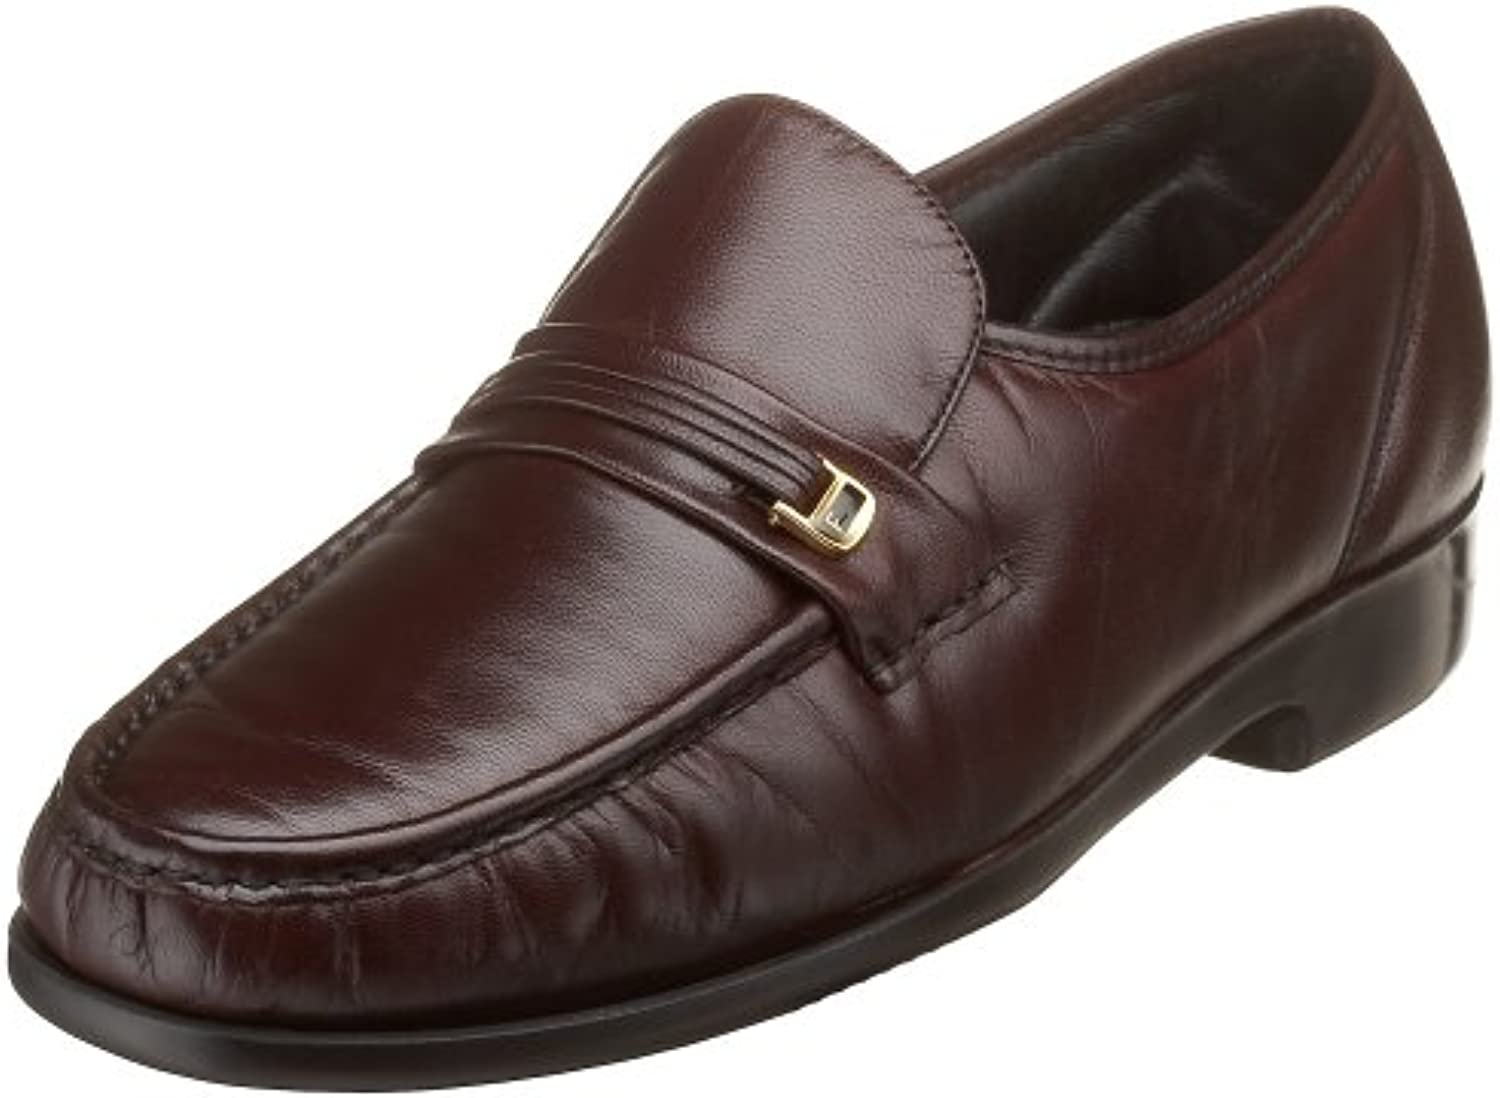 Florsheim Men's Riva Slip On Burgundy 10.5 EEE